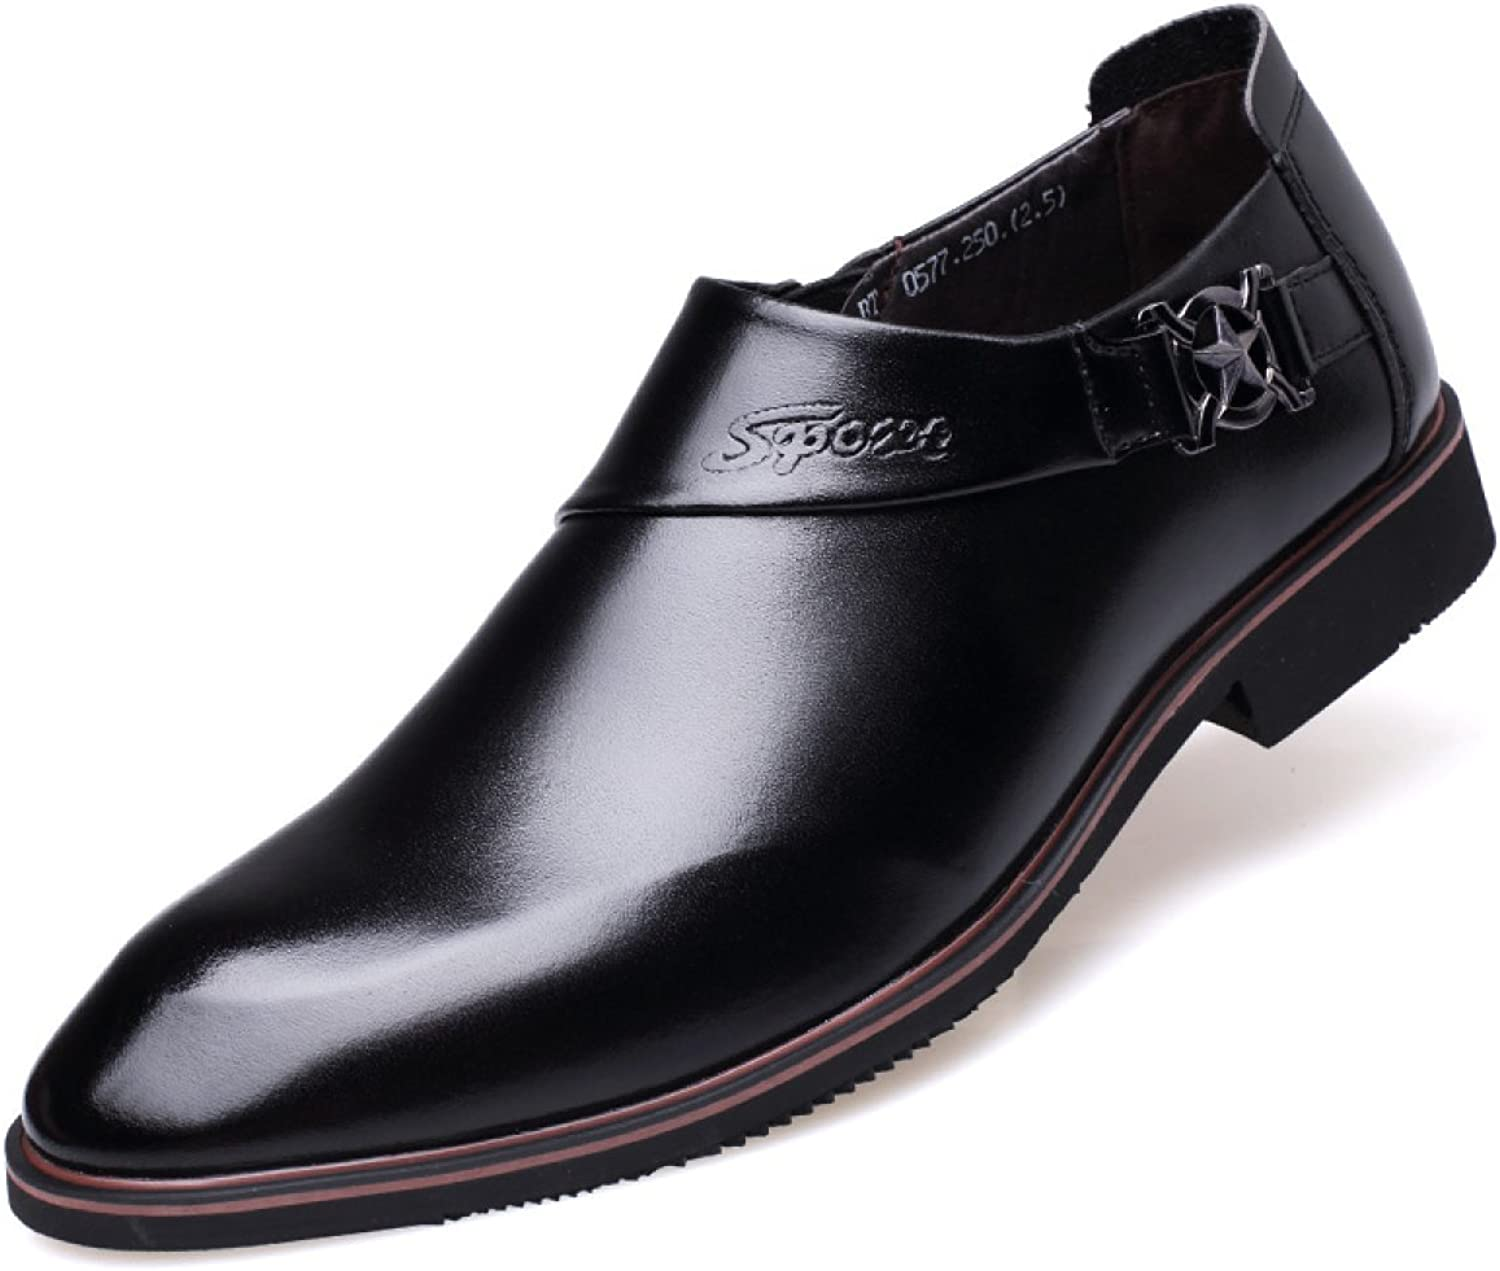 Men's Business Dress Leather shoes Casual Wedding Pointed Toe Oxfords